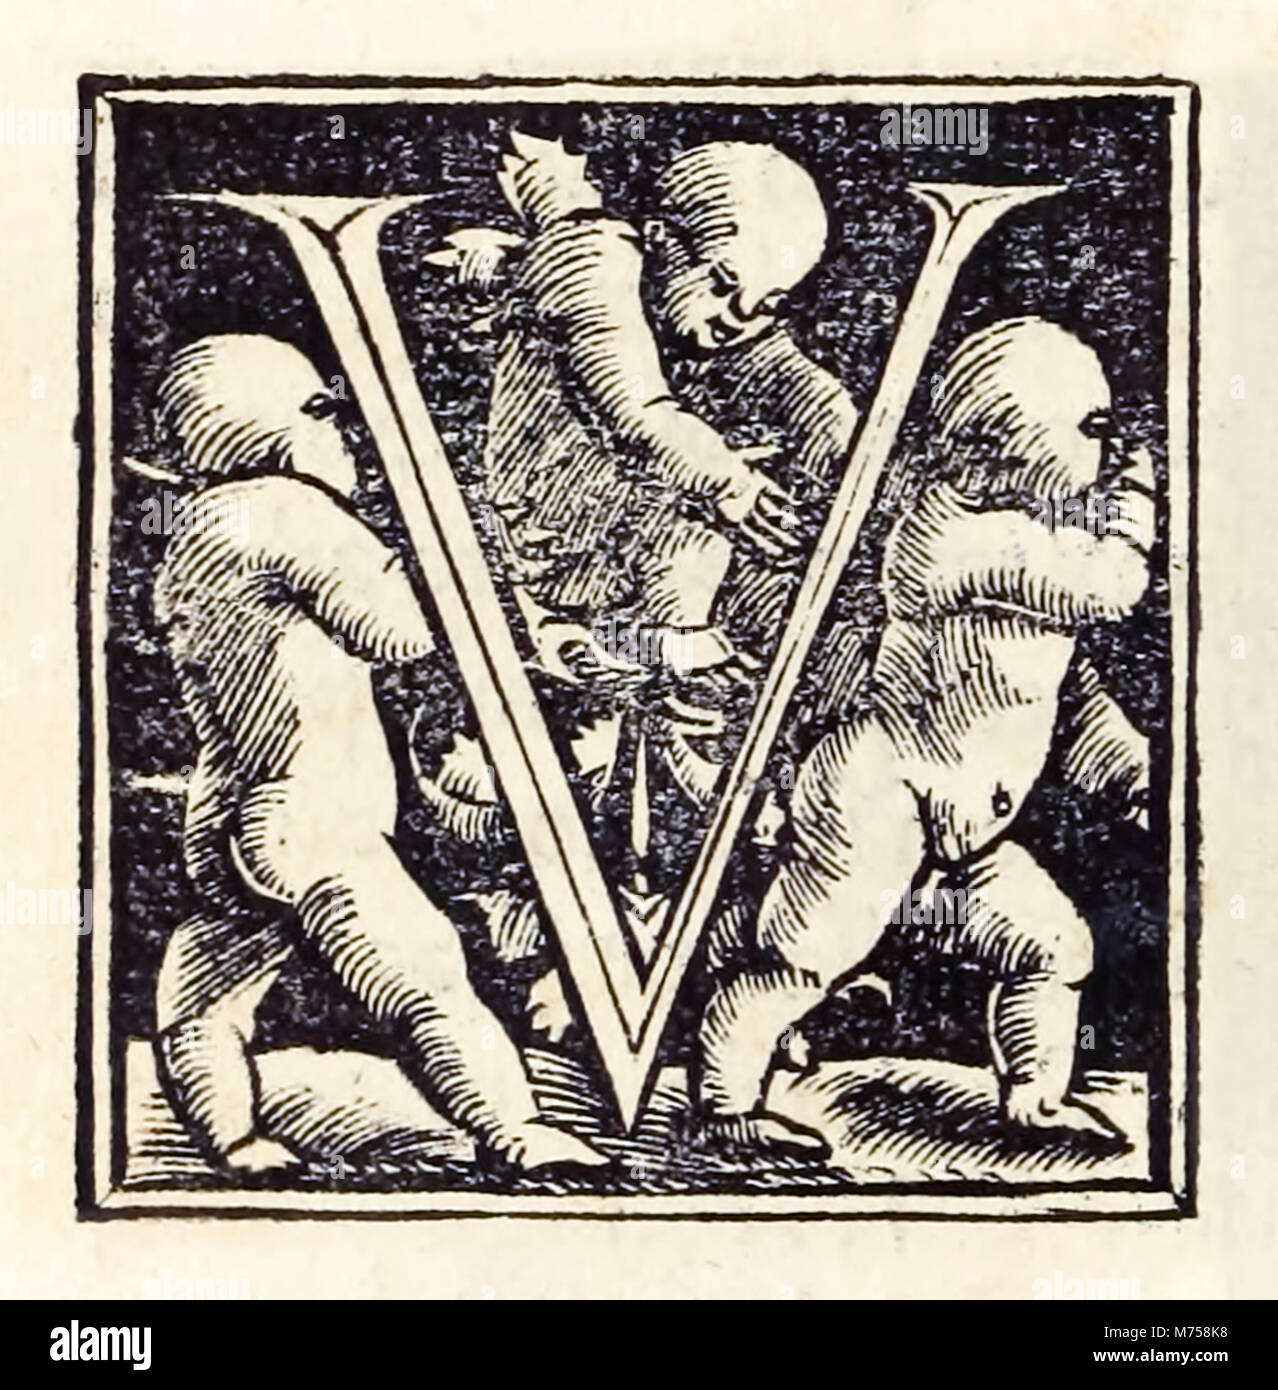 Illuminated 'V' from the 1518 Basel third edition of 'Utopia' by Sir Thomas More (1478–1535) first published - Stock Image